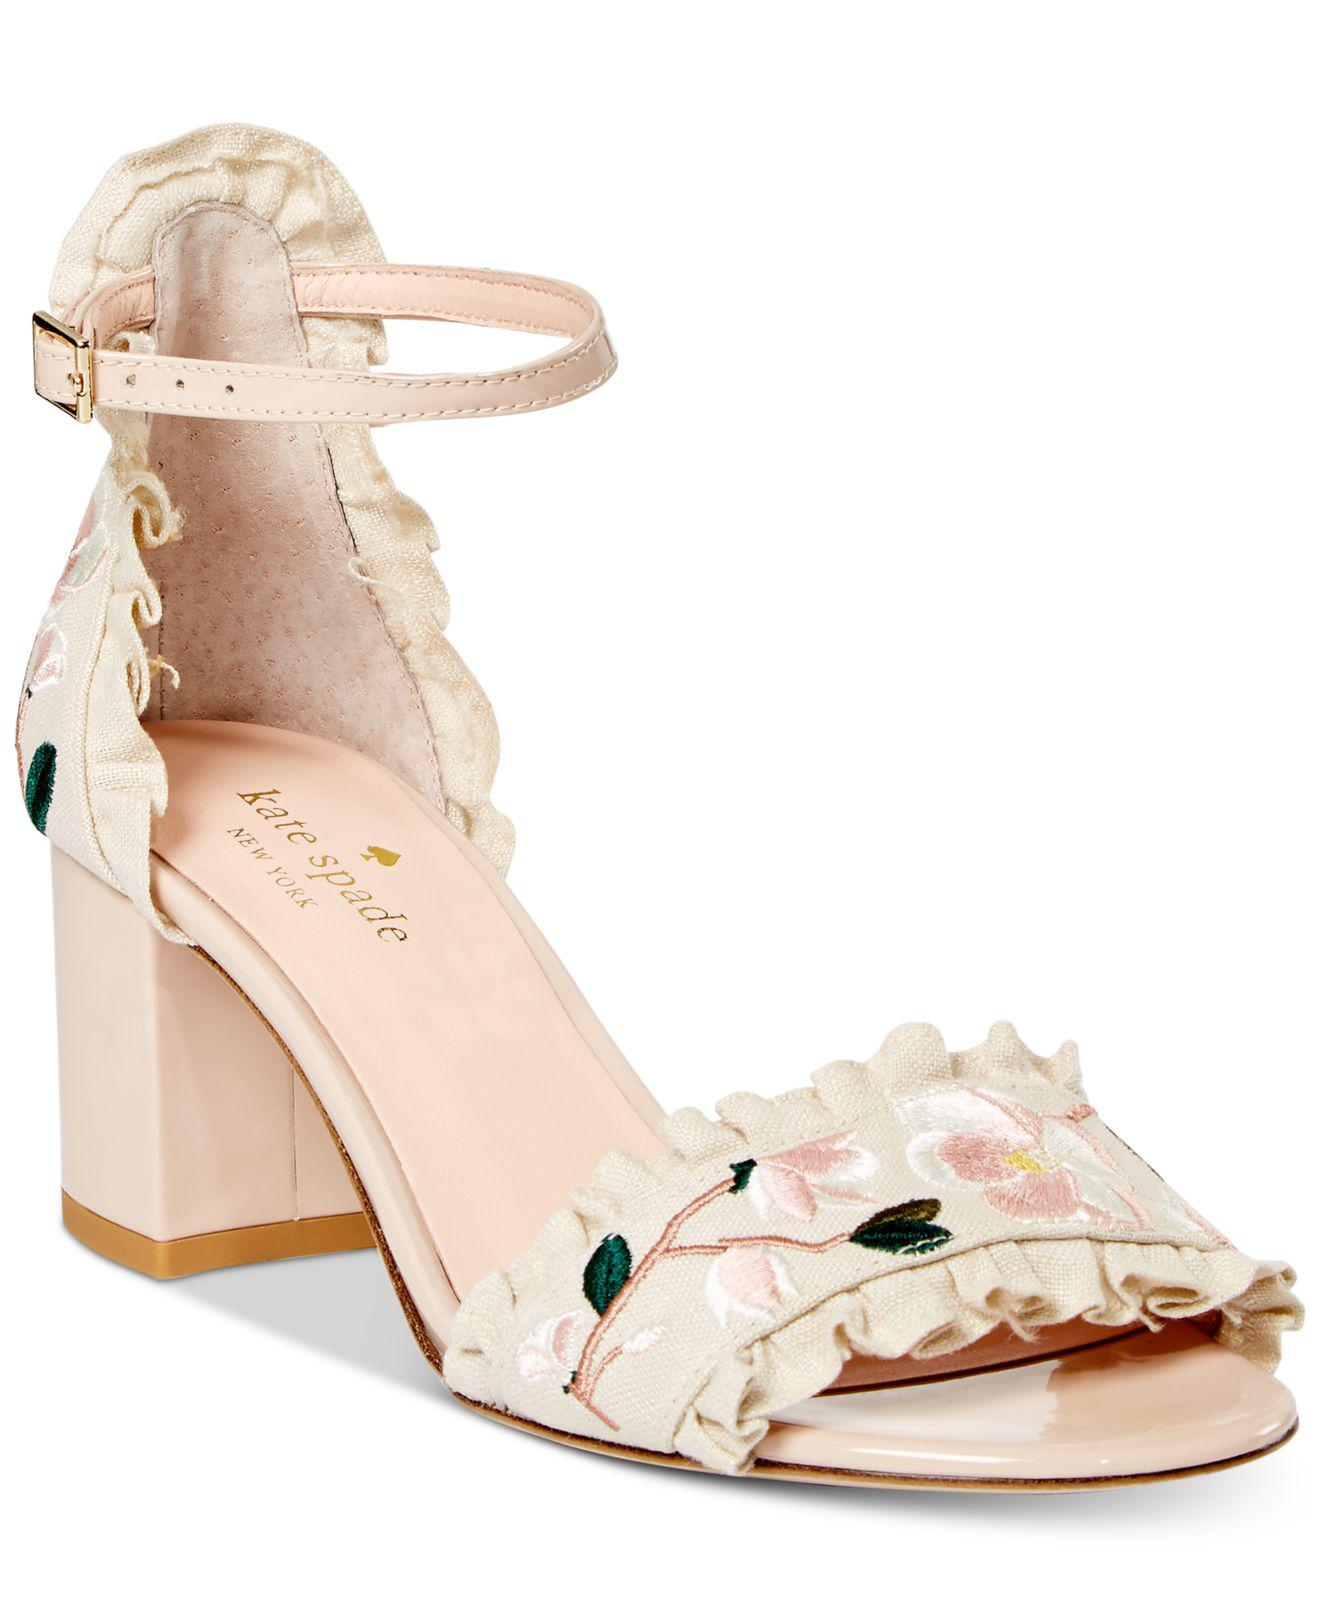 bec9a23edc6c Lyst - Kate Spade Wayne Embroidered Dress Sandals in Natural